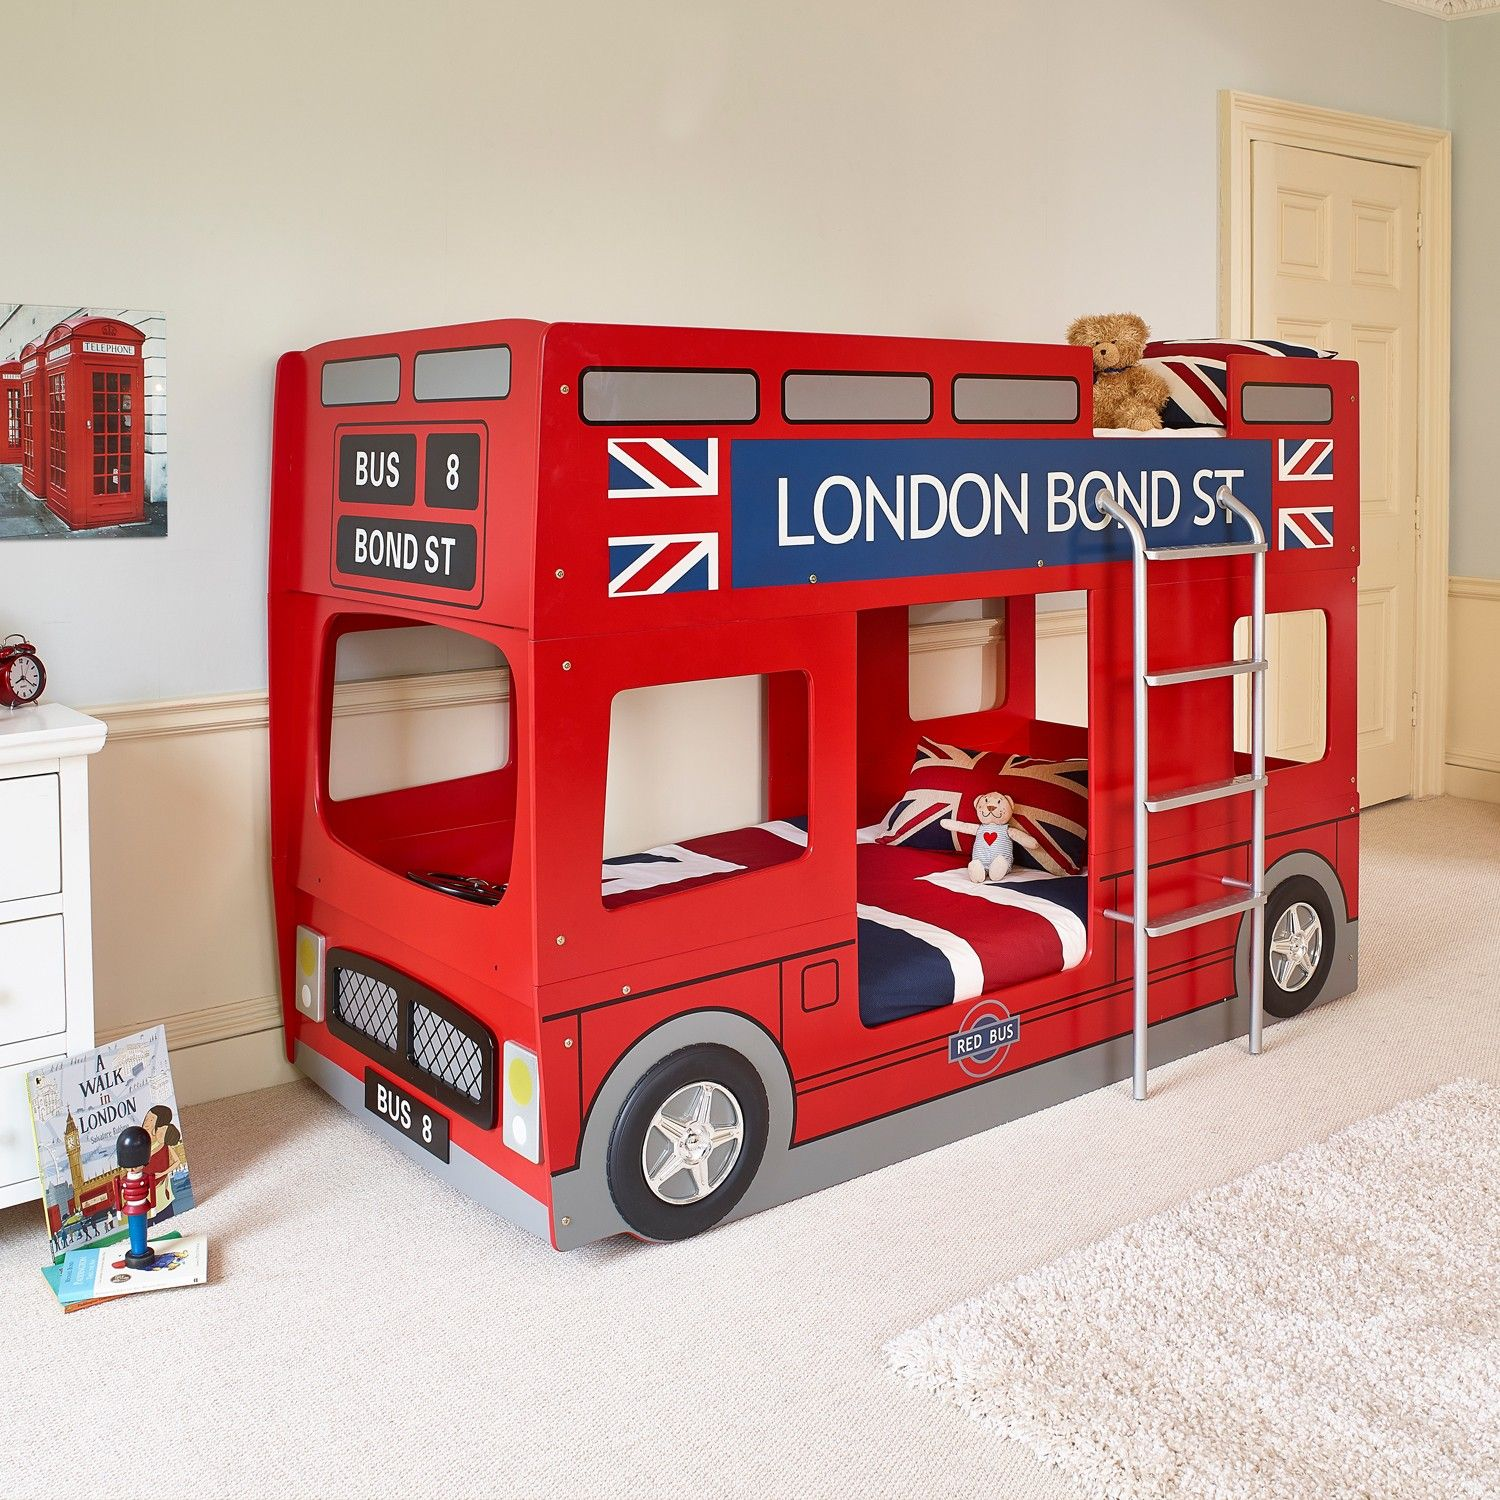 Car bunk beds for kids - London Bus Children S Bed Carpetright